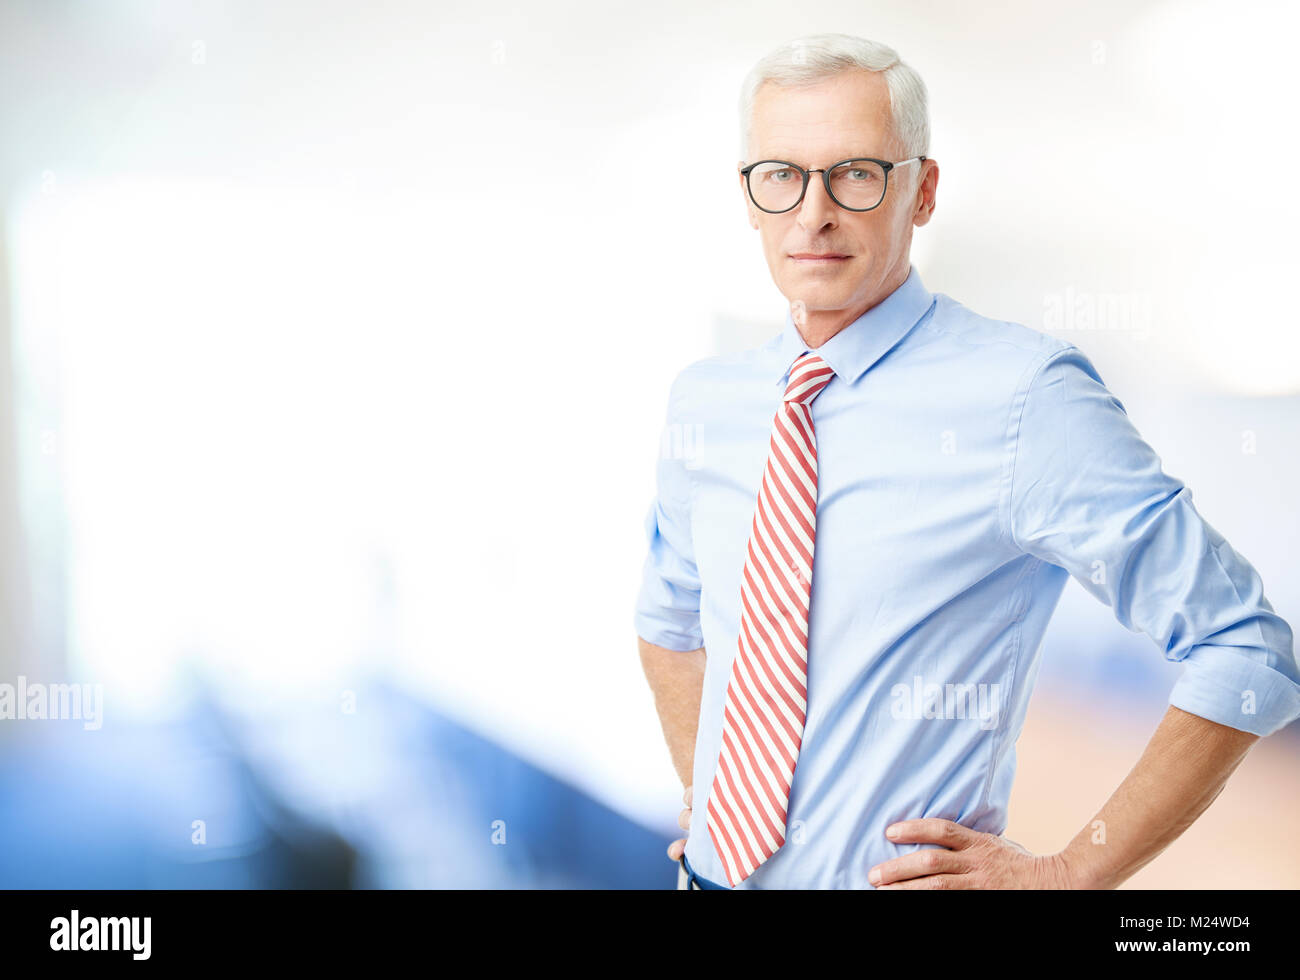 Senior professional man standing with hands on his hips in the office and looking at camera. - Stock Image